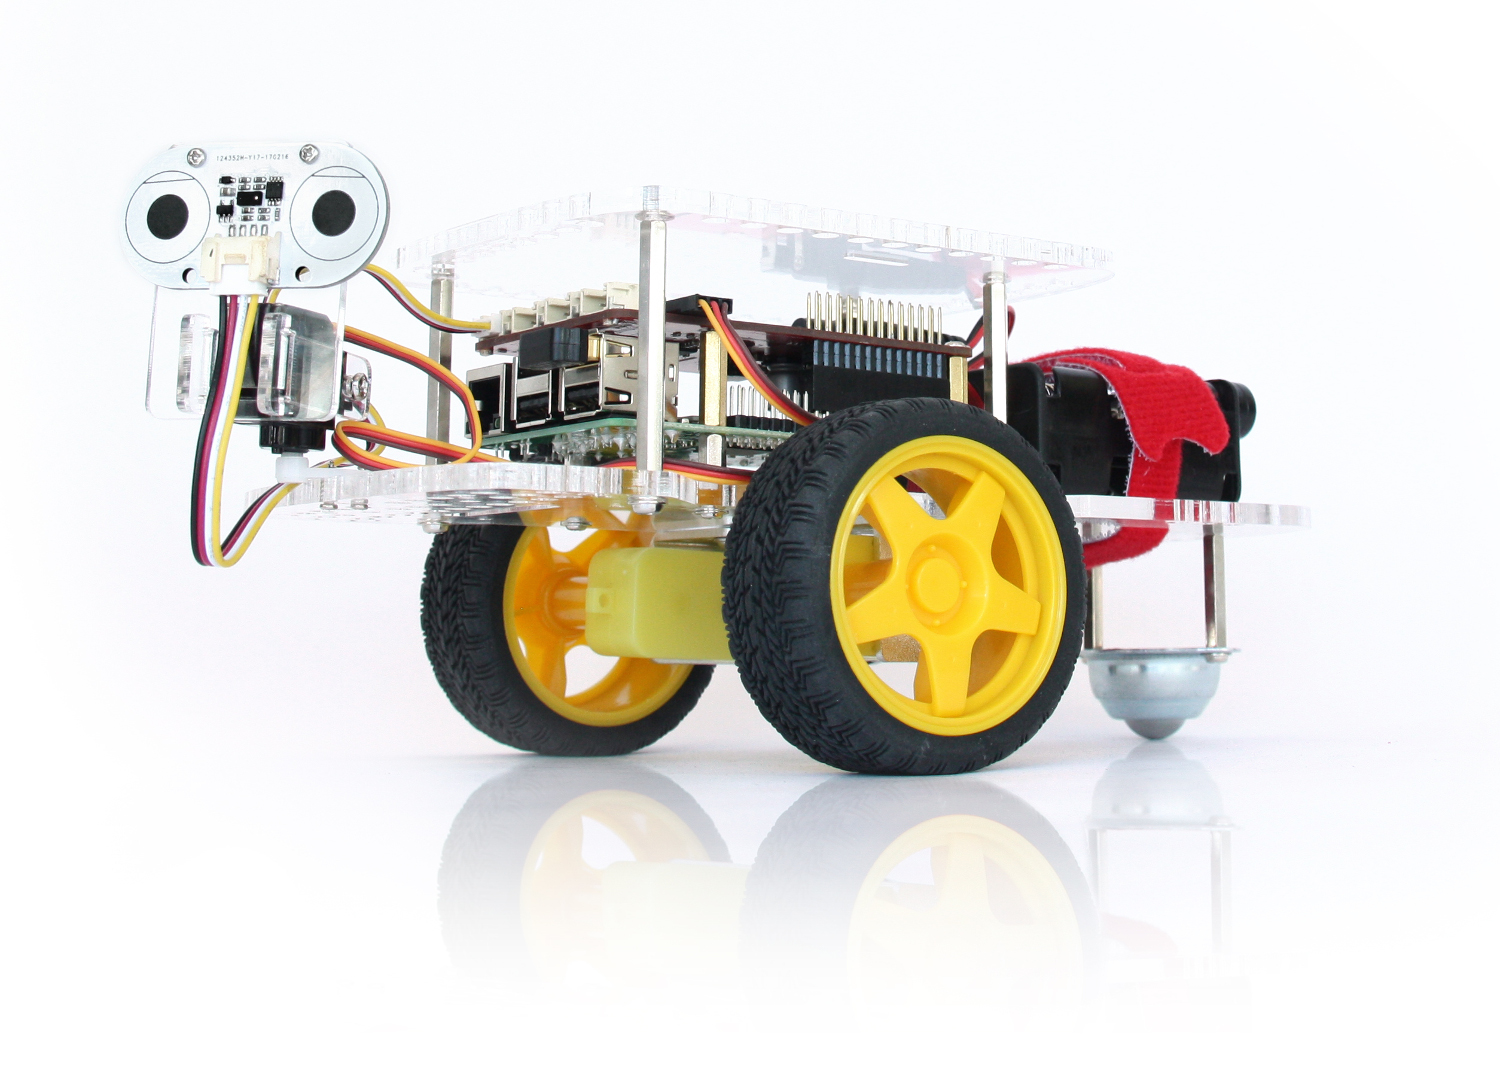 GoPiGo3 review - The MagPi MagazineThe MagPi Magazine